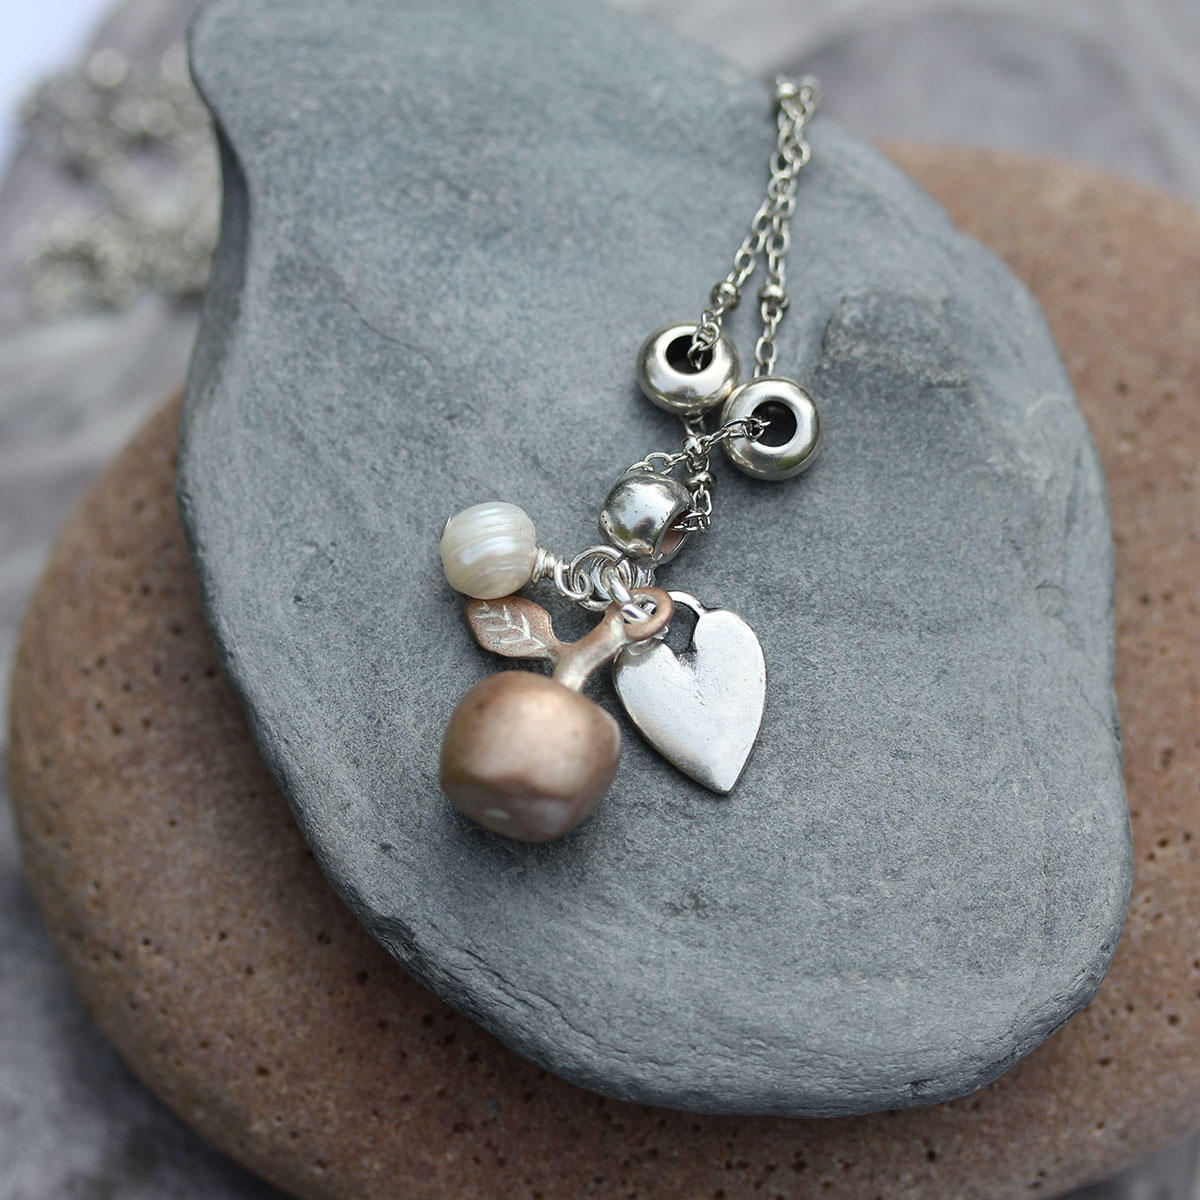 Silvered Copper Charms and Freshwater Pearl Bead Necklace